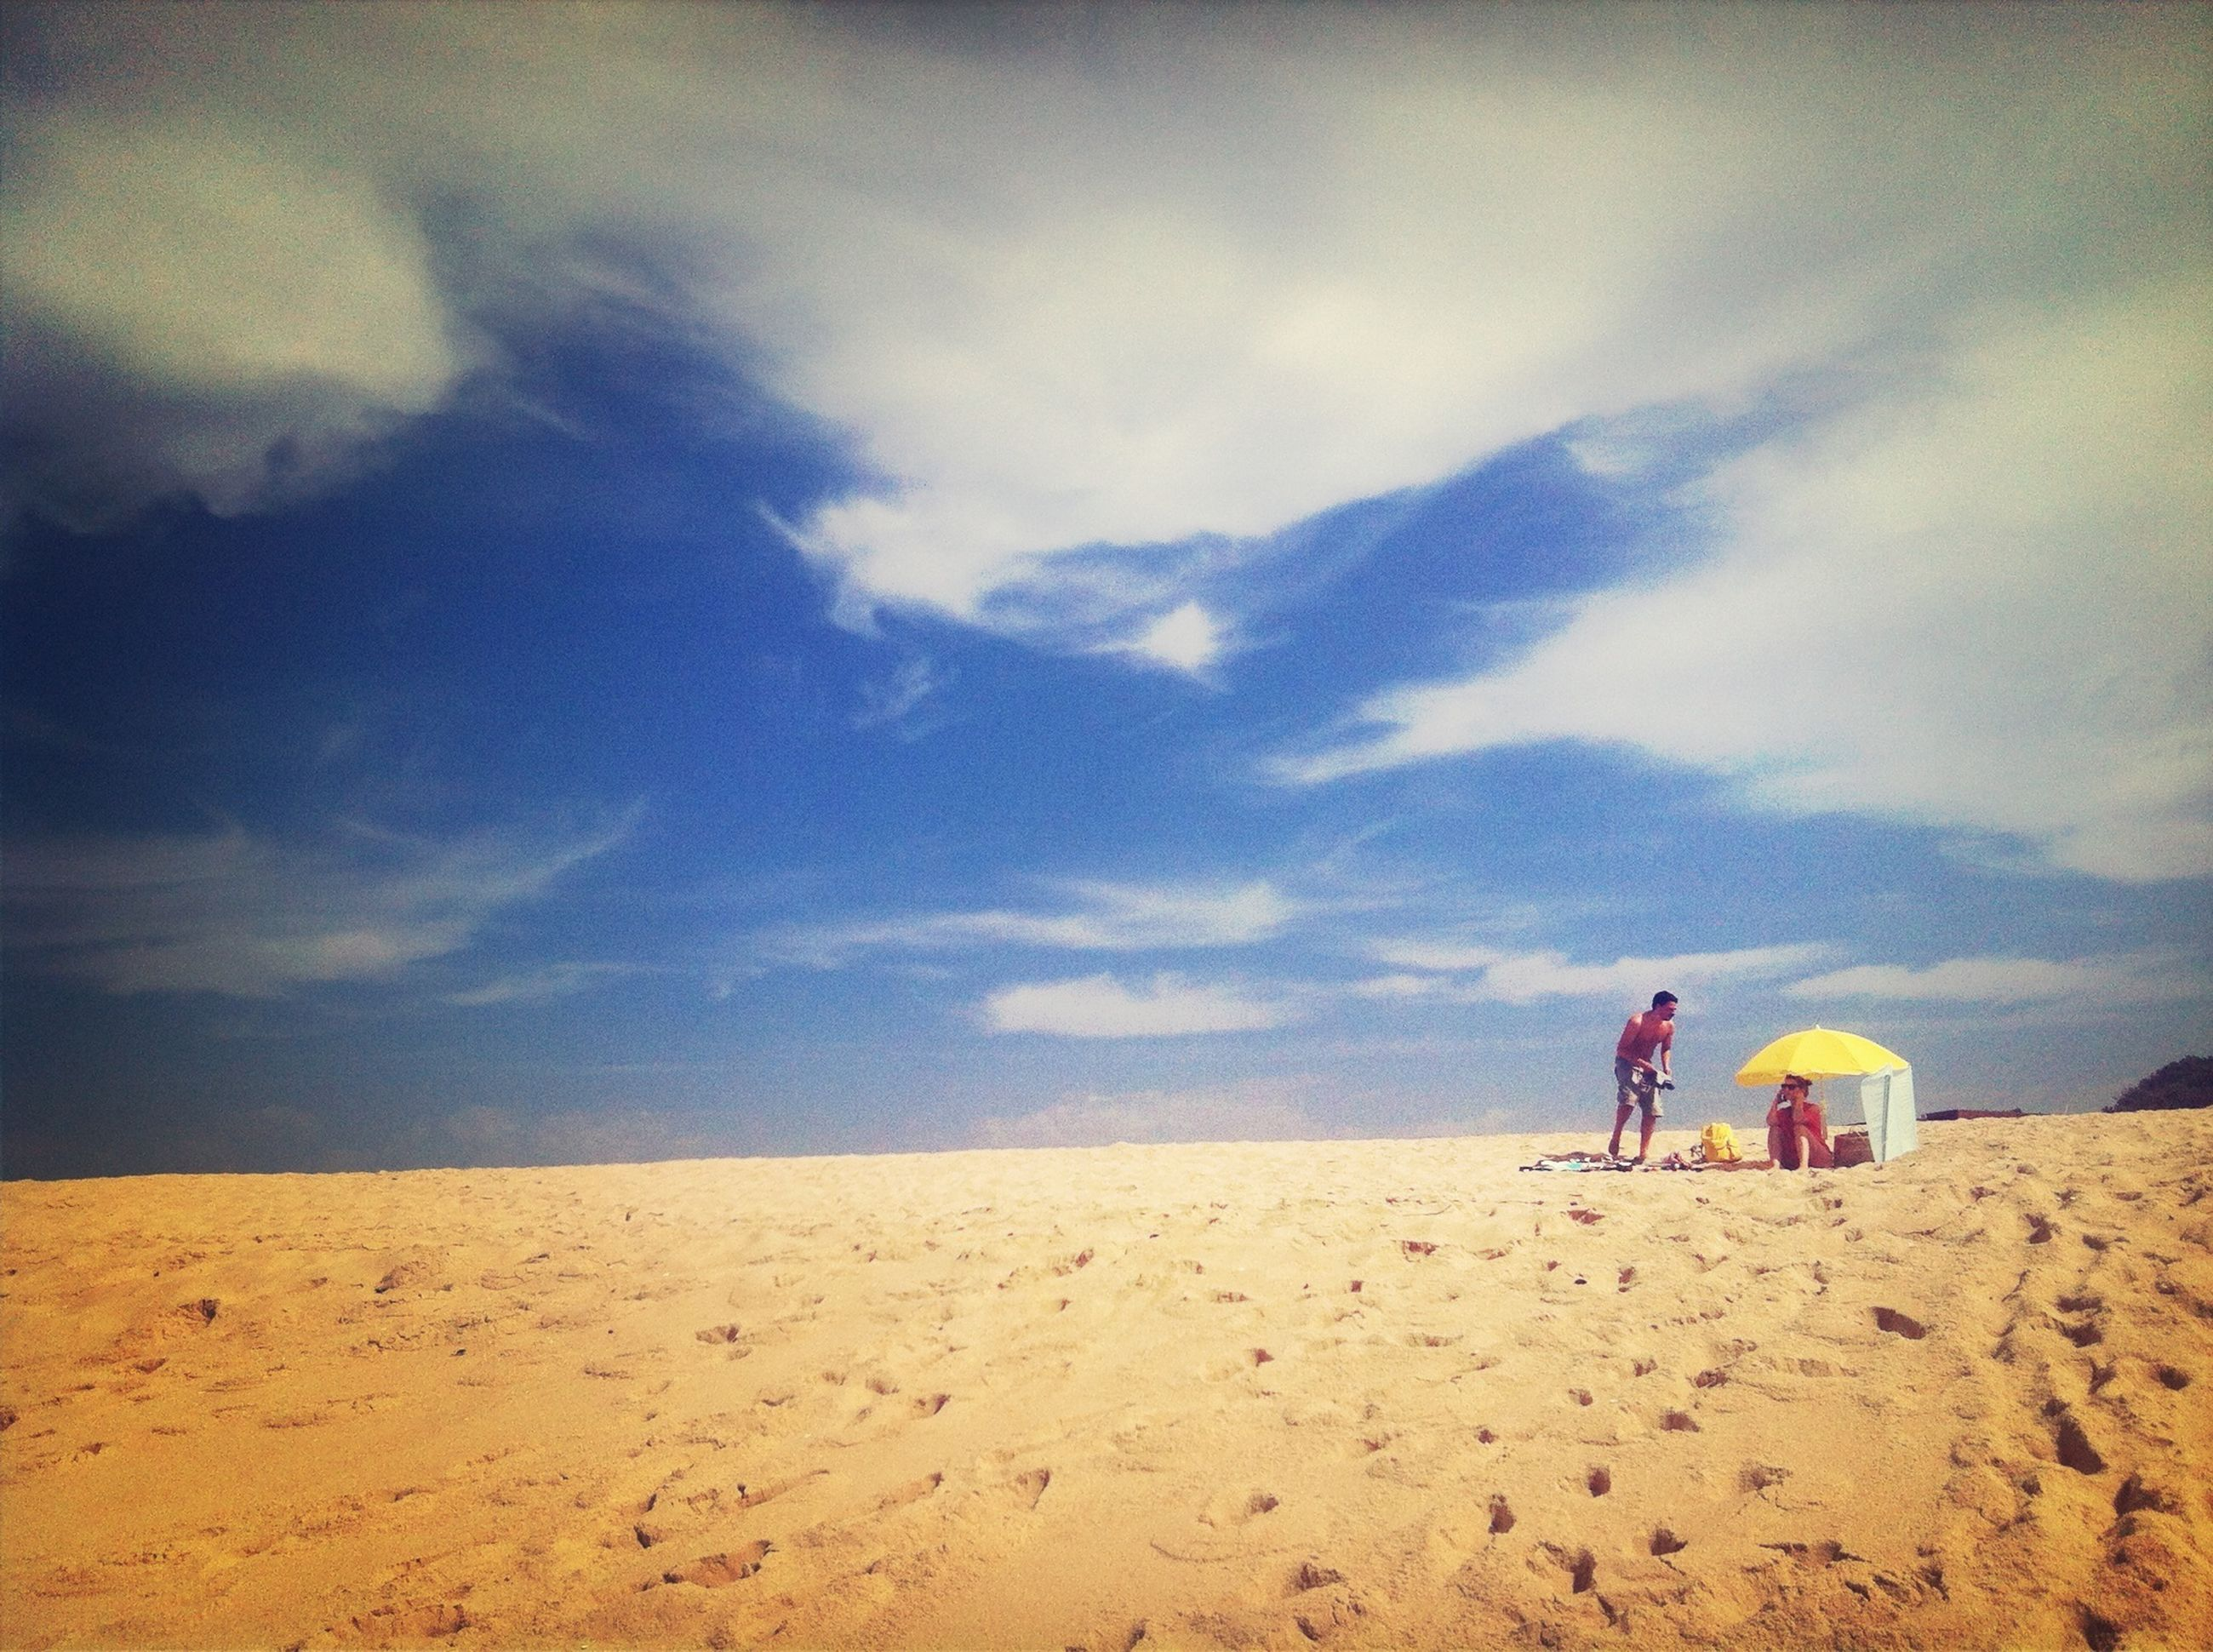 sand, beach, leisure activity, sky, lifestyles, men, full length, cloud - sky, childhood, shore, tranquility, vacations, tranquil scene, scenics, rear view, casual clothing, nature